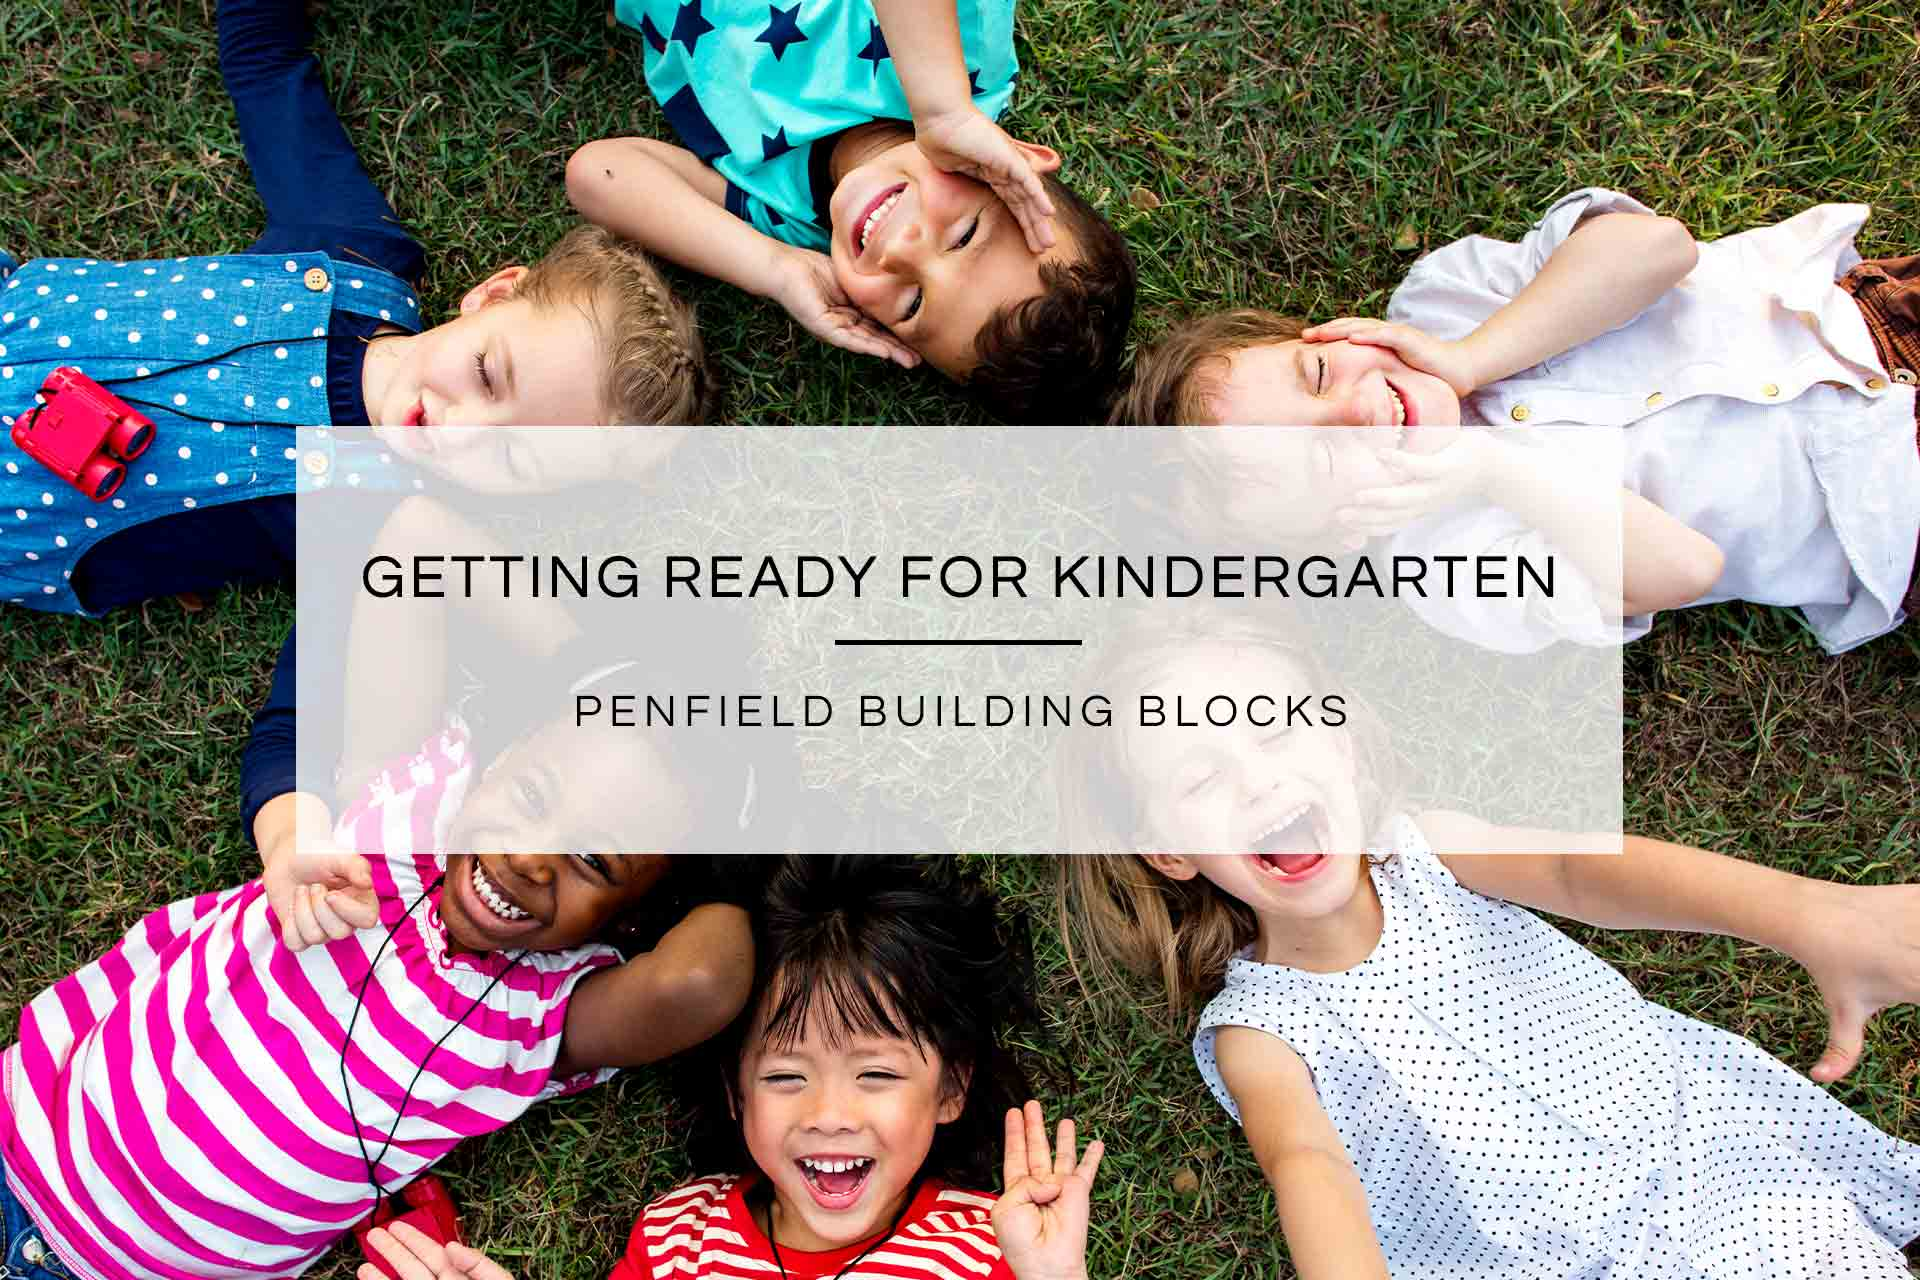 Getting Ready For Kindergarten | Penfield Building Blocks